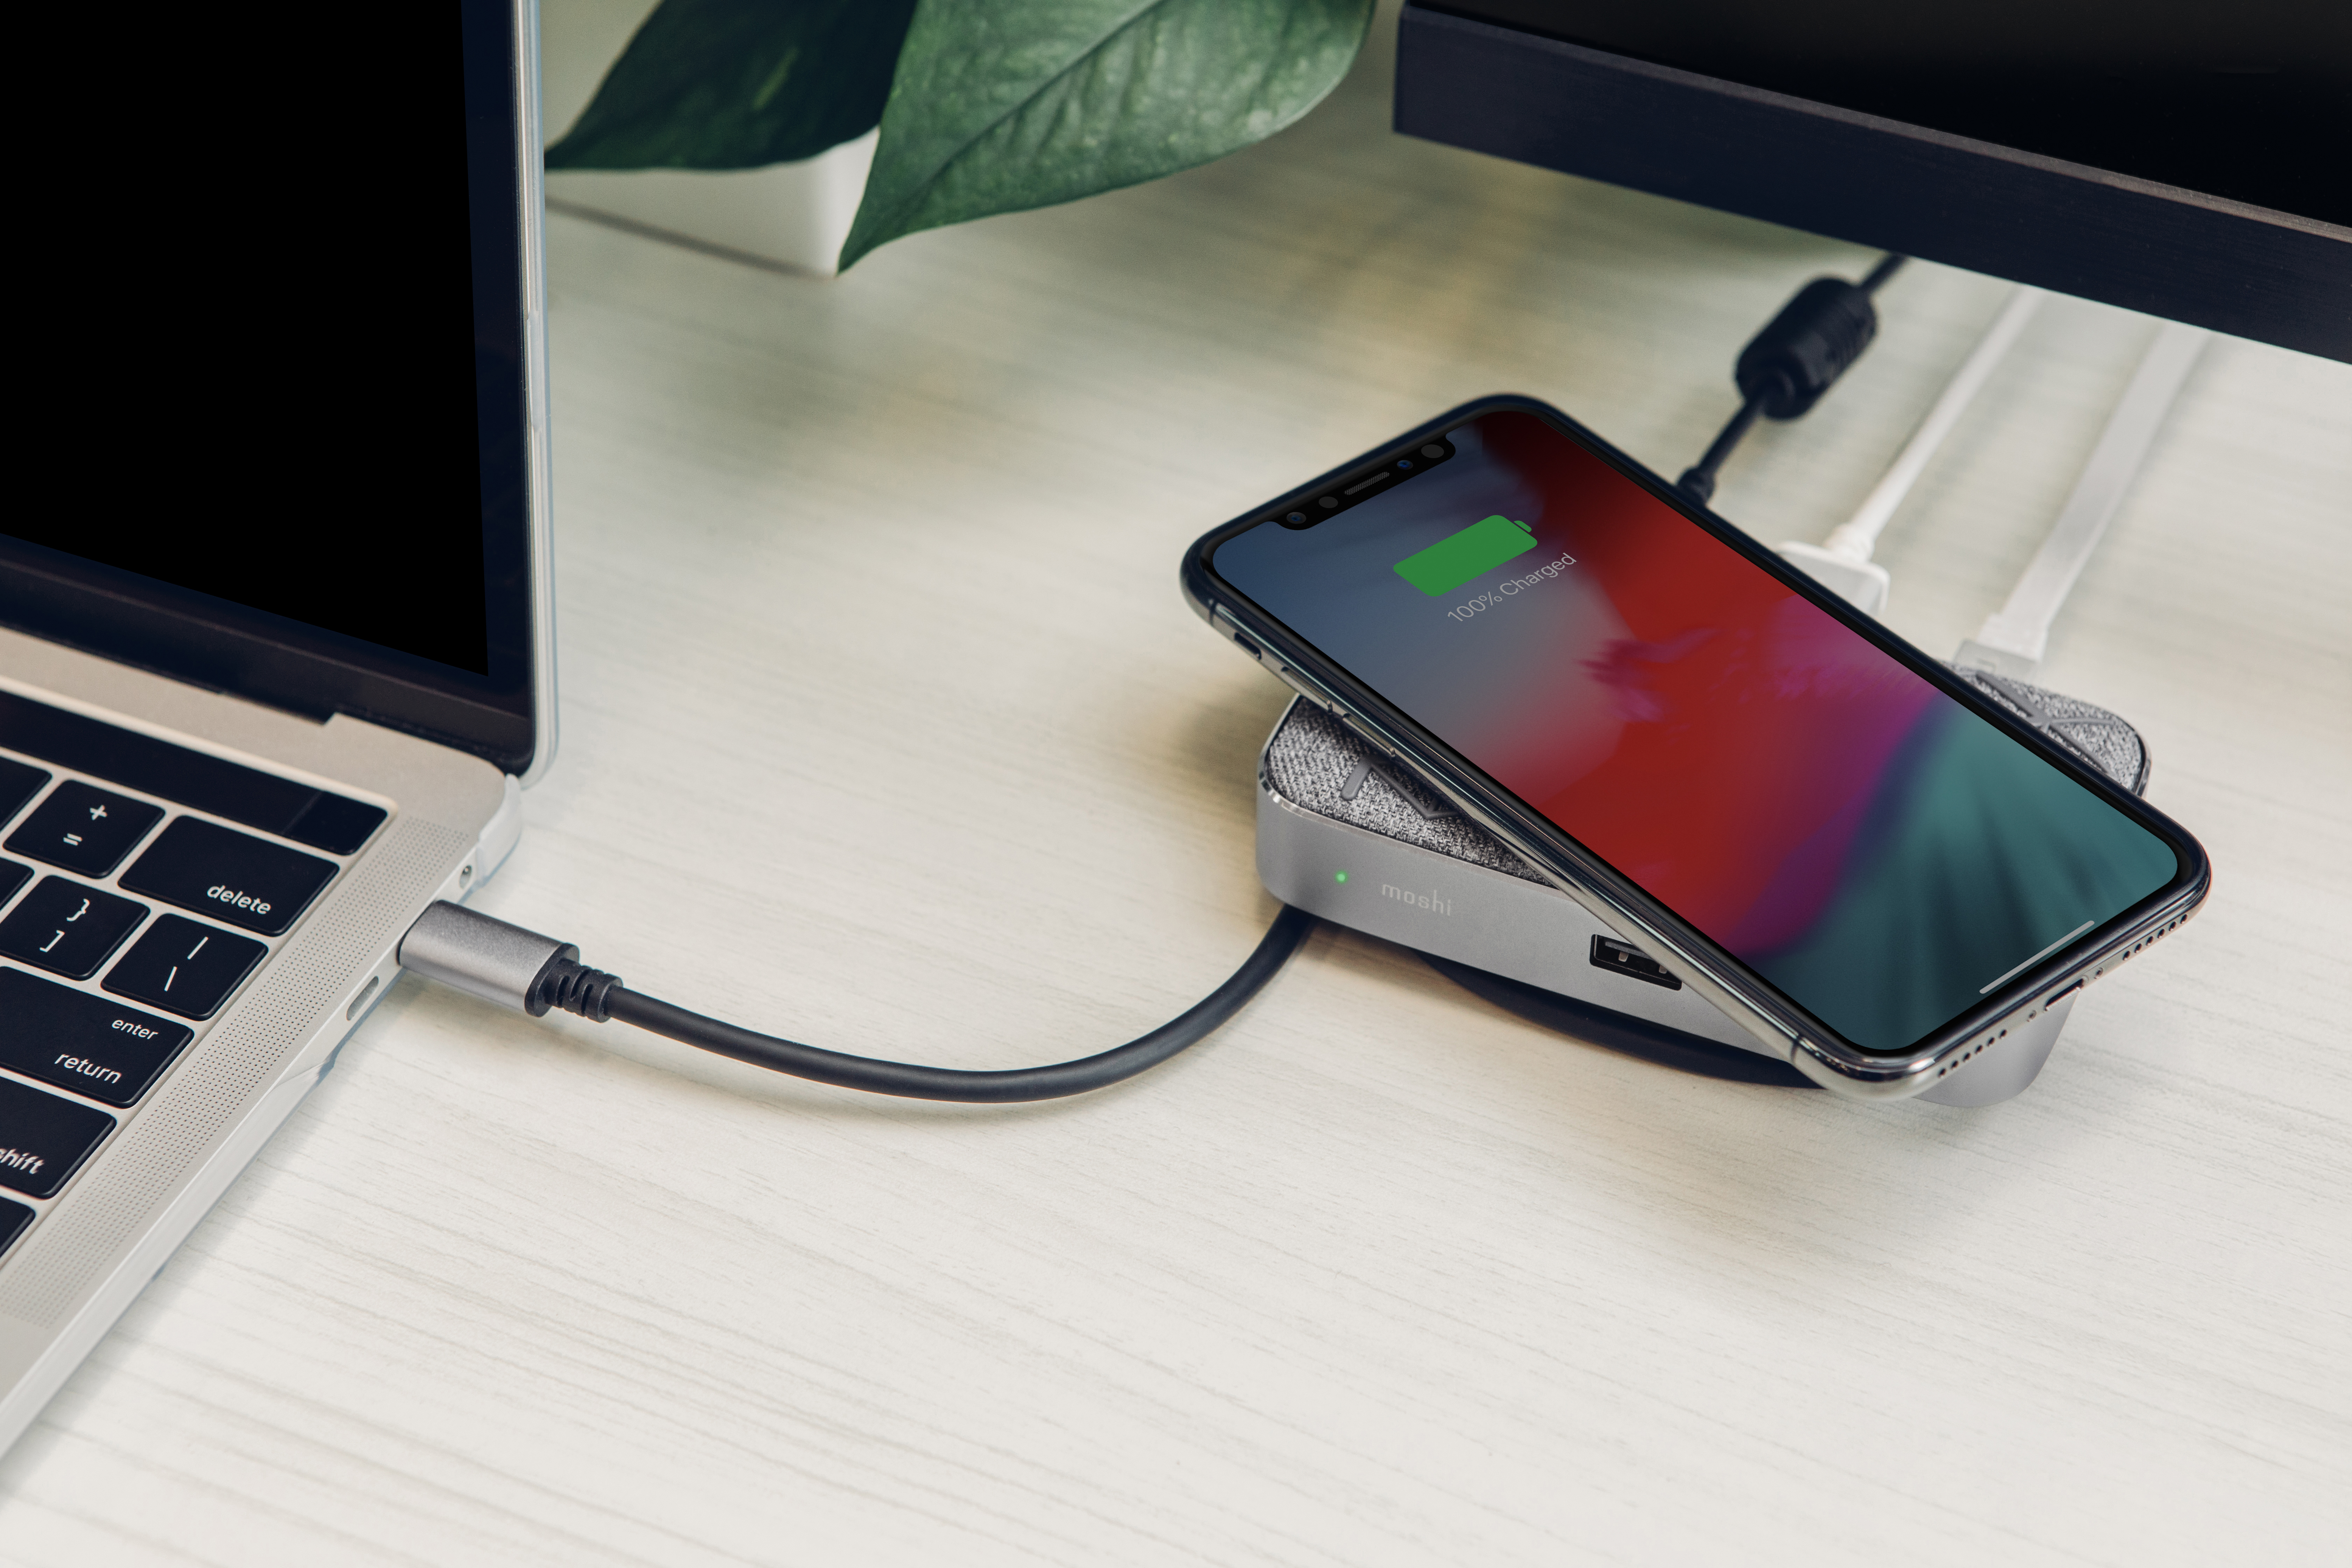 A Moshi Symbus Q hub connected to a MacBook, with an iPhone on top charging wirelessly